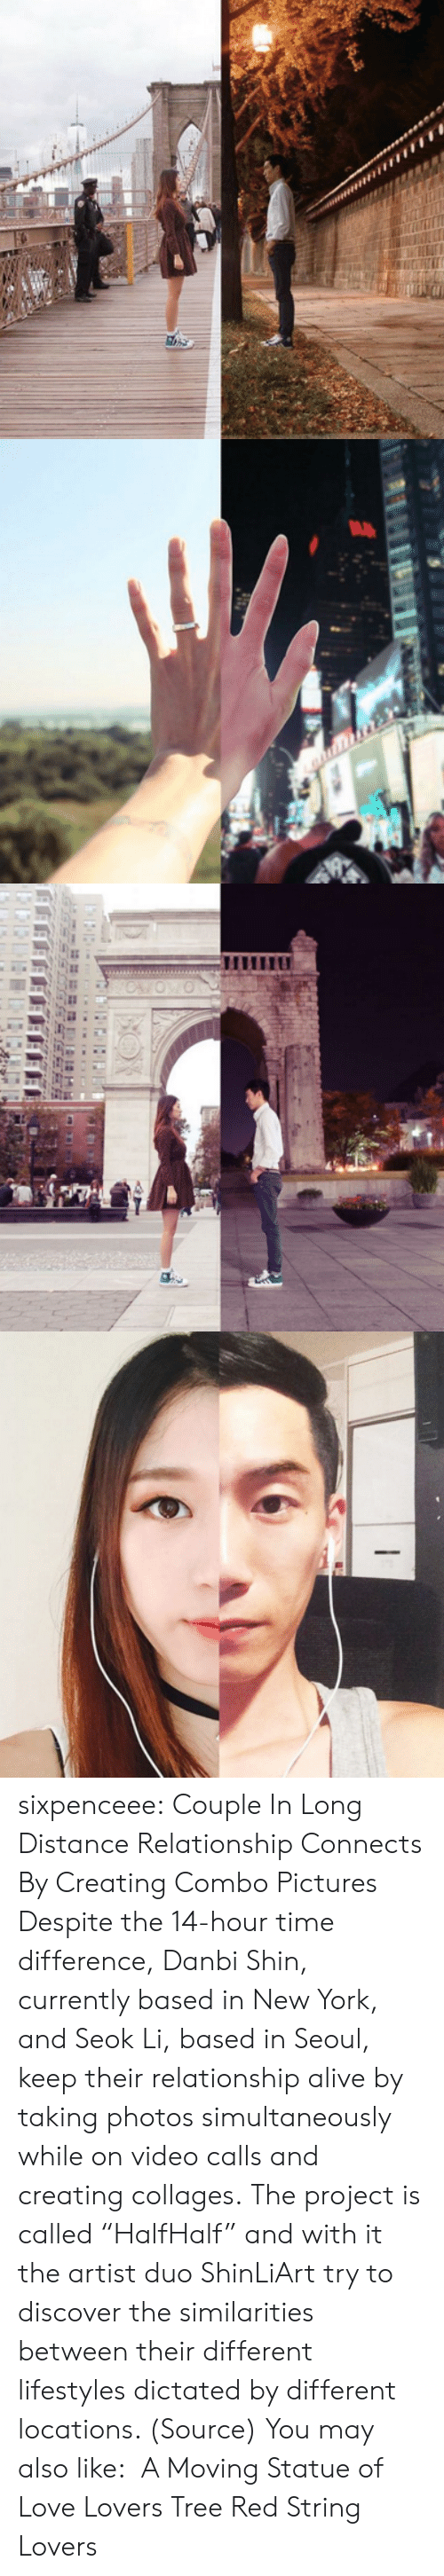 "Distance Relationship: sixpenceee:  Couple In Long Distance Relationship Connects By Creating Combo Pictures Despite the 14-hour time difference, Danbi Shin, currently based in New York, and Seok Li, based in Seoul, keep their relationship alive by taking photos simultaneously while on video calls and creating collages. The project is called ""HalfHalf"" and with it the artist duo ShinLiArt try to discover the similarities between their different lifestyles dictated by different locations. (Source) You may also like:  A Moving Statue of Love Lovers Tree Red String Lovers"